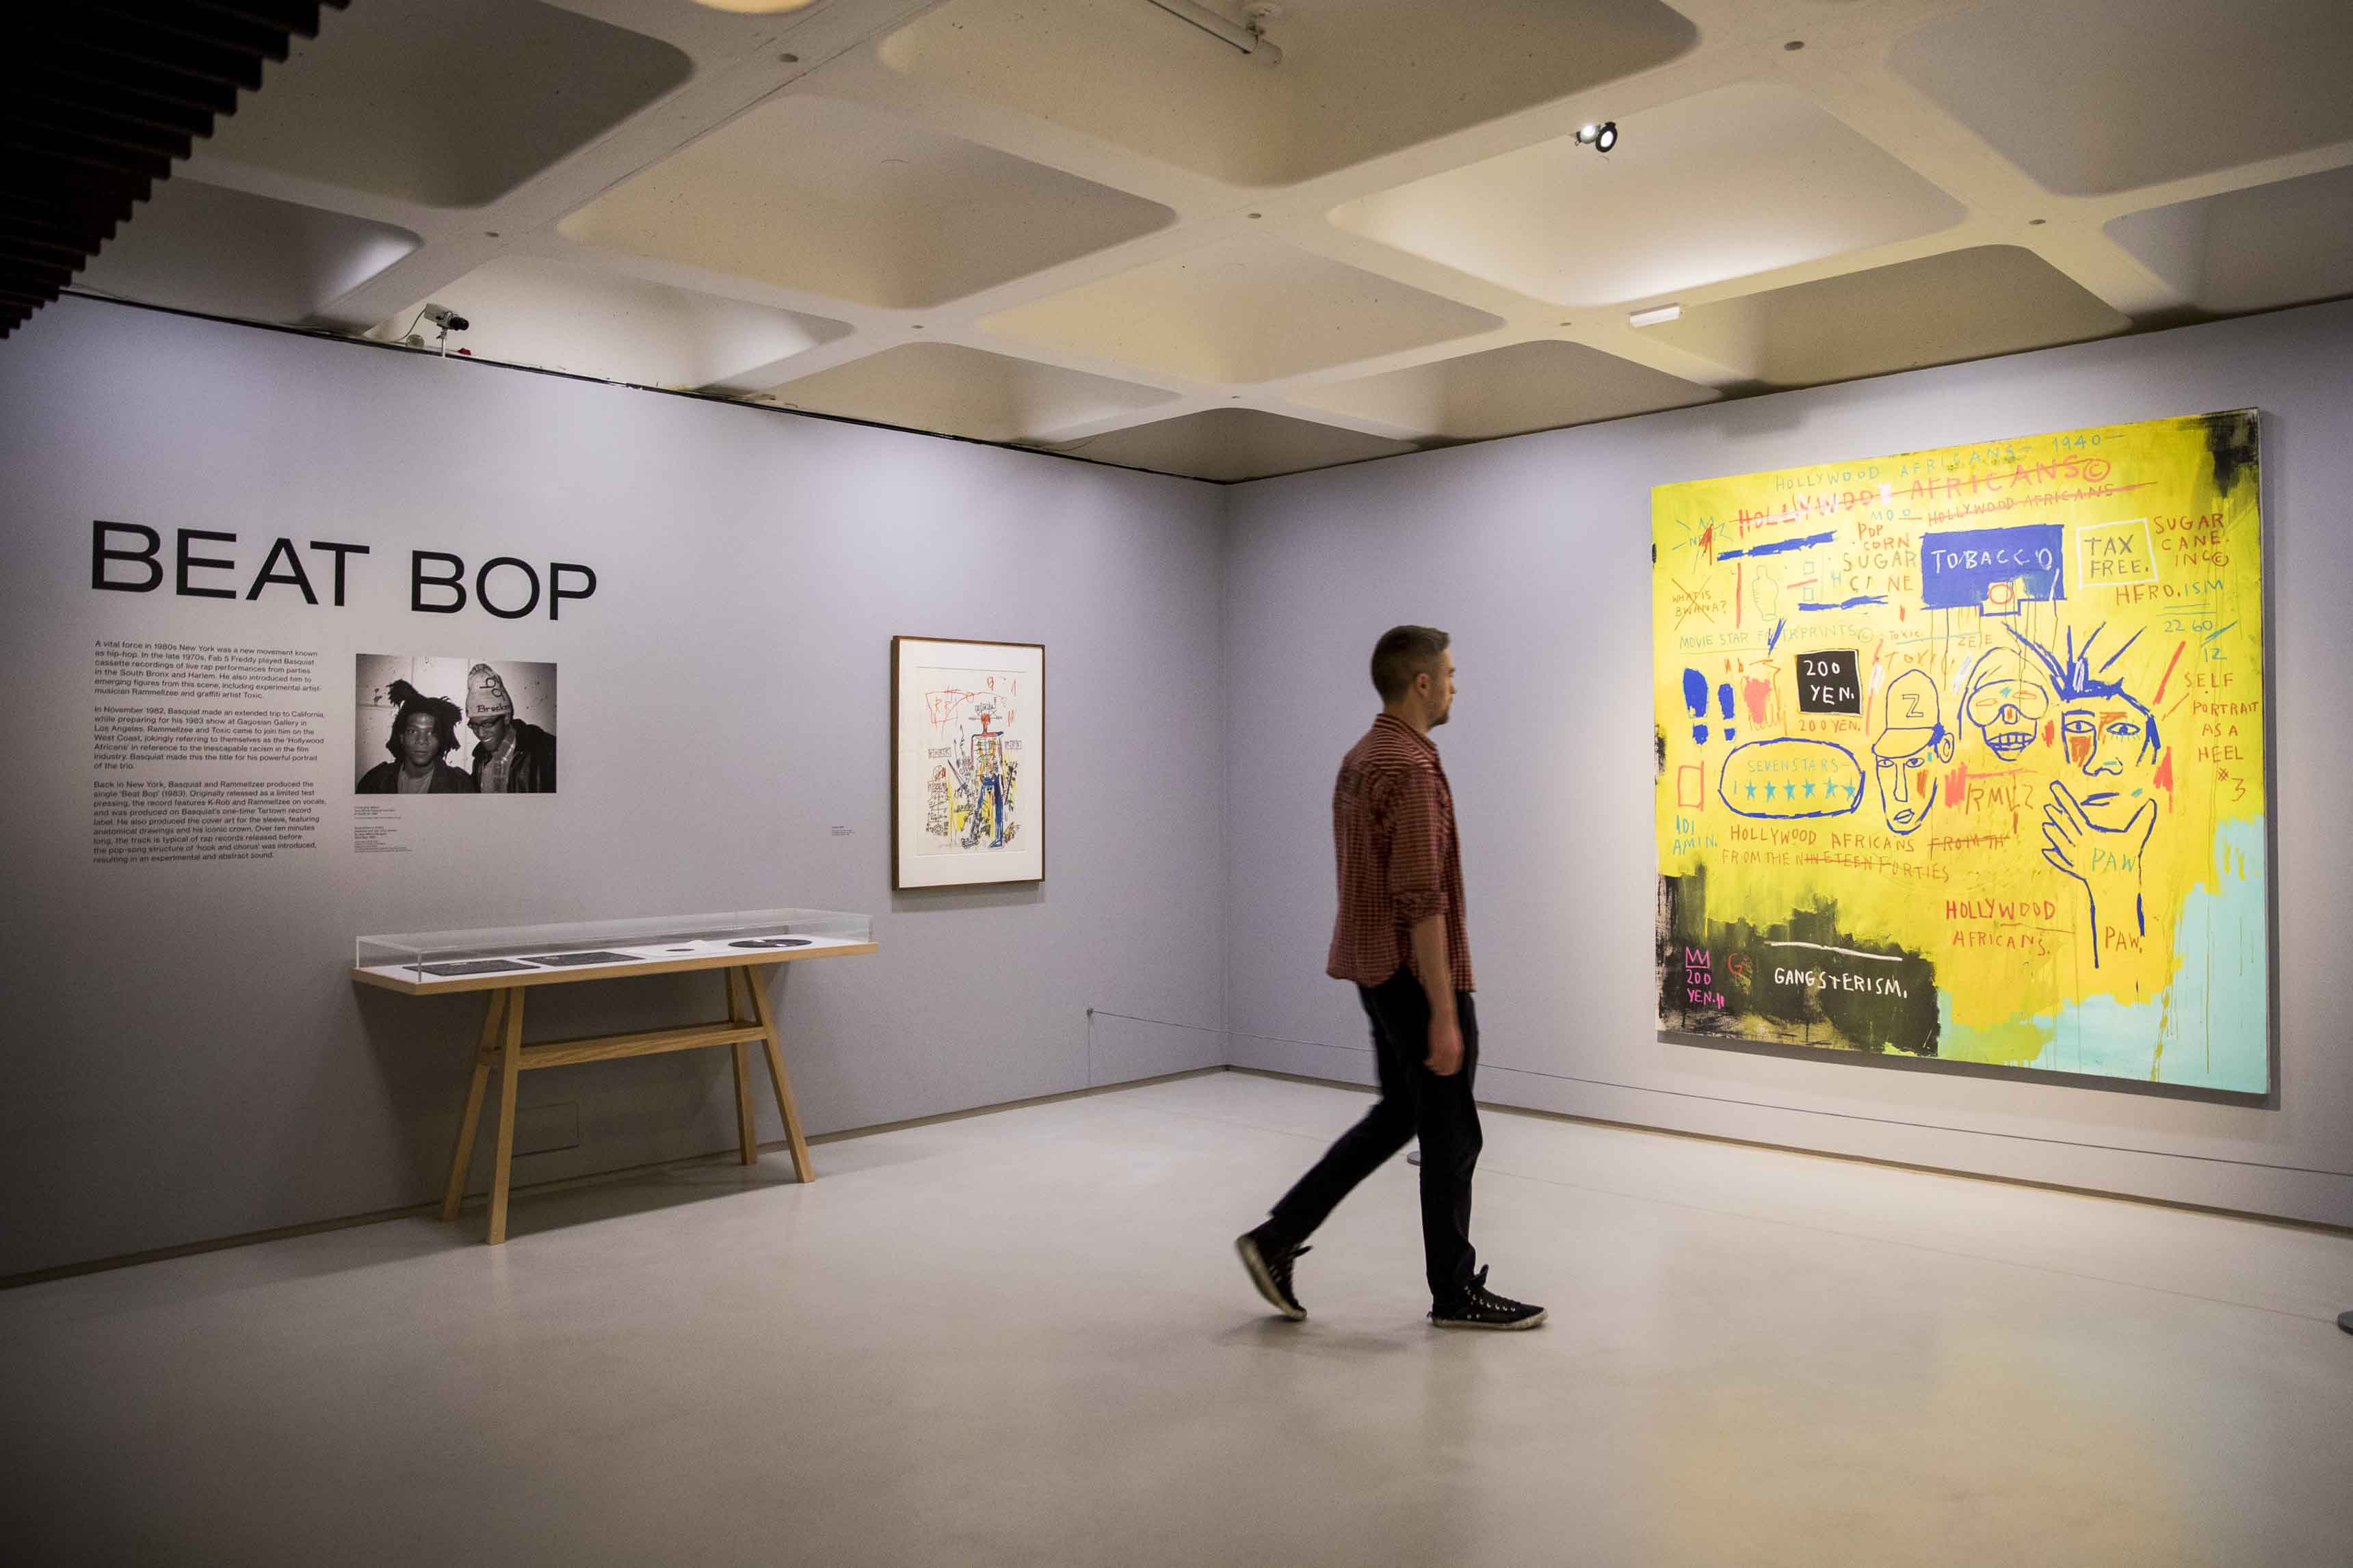 Basquiat: Boom For Real Installation view Barbican Art Gallery 21 September 2017 – 28 January 2018 © Tristan Fewings / Getty Images Artwork: Jean-Michel Basquiat, Hollywood Africans, 1983 Courtesy Whitney Museum of American Art, New York. © The Estate of Jean-Michel Basquiat/ Artists Rights Society (ARS), New York/ ADAGP, Paris. Licensed by Artestar, New York.